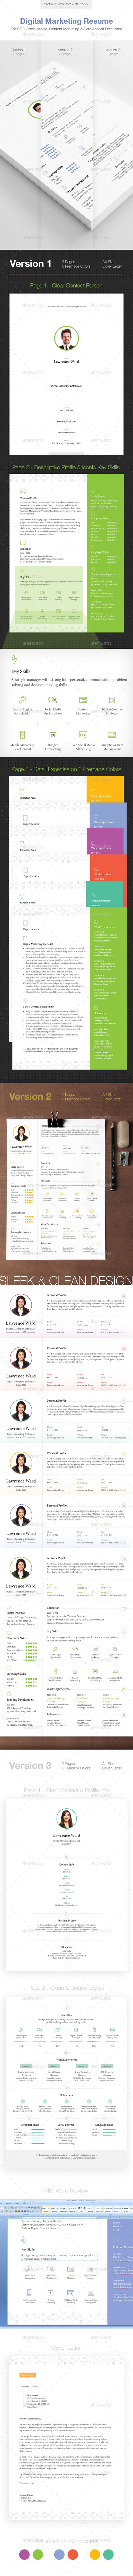 marketing resumes resume format pdf marketing resumes event marketing resume example buy marketer resume by afahmy on graphicriver introduction digital marketing